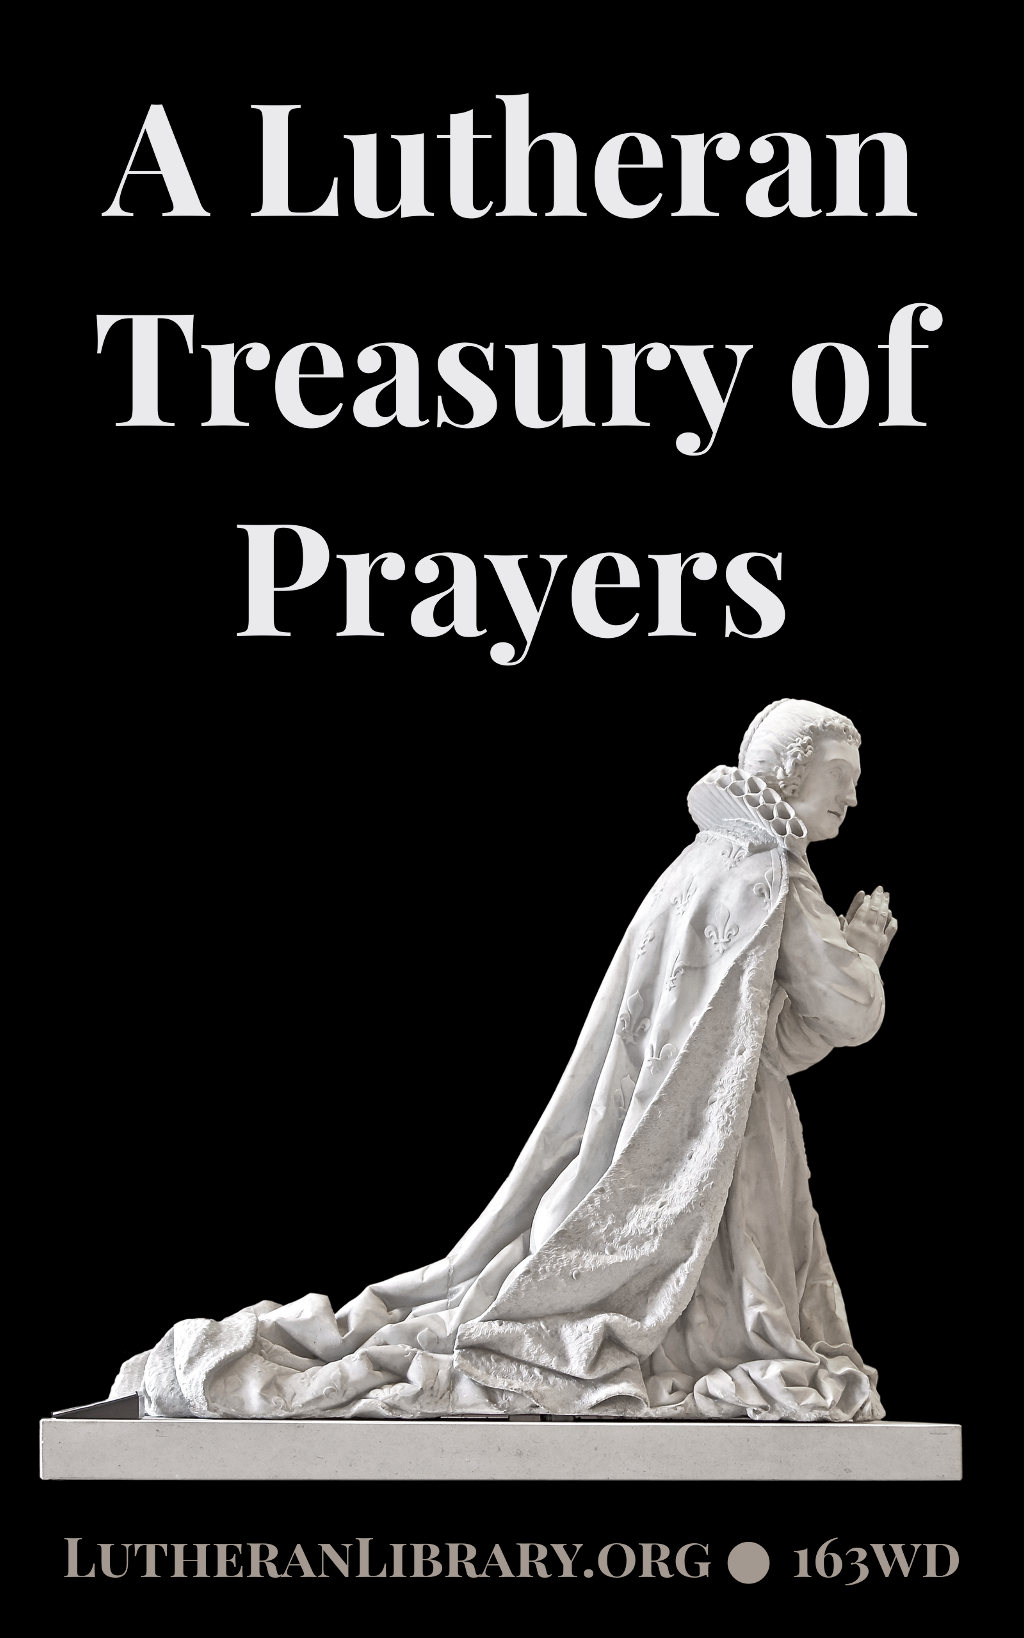 A Lutheran Treasury of Prayers